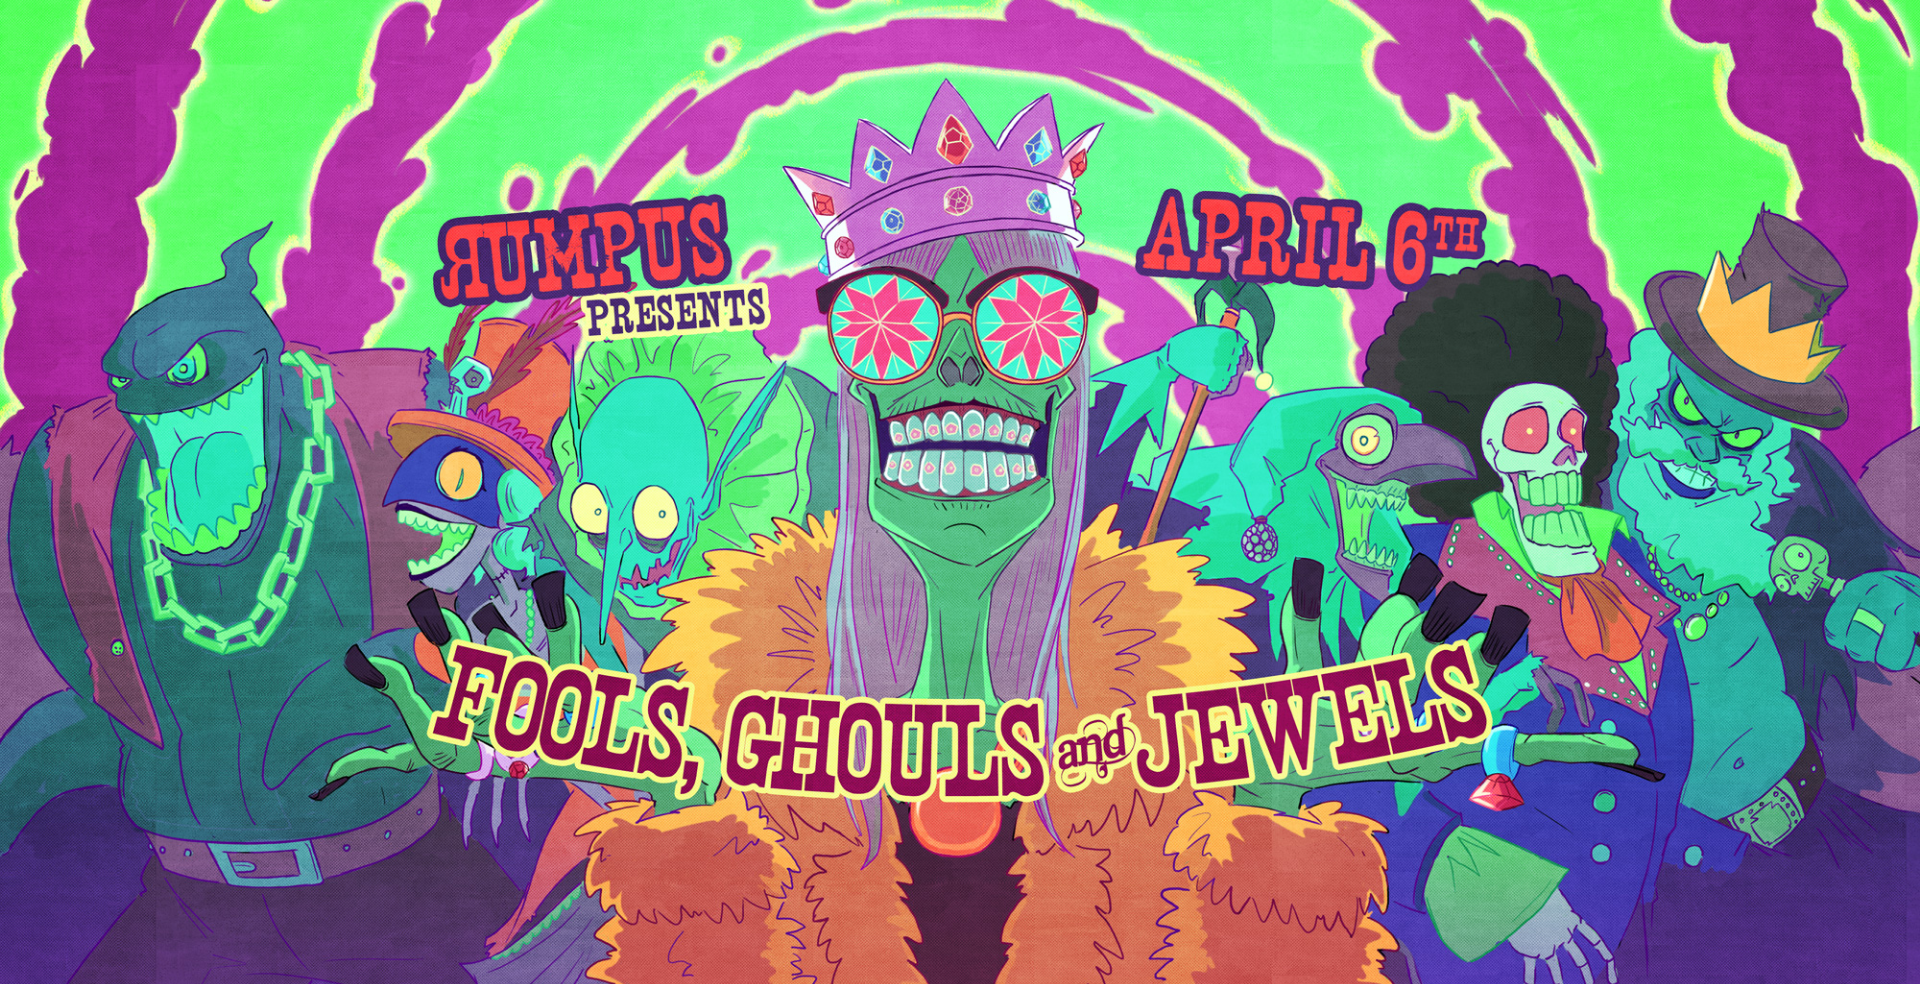 Rumpus: Fools, Ghouls & Jewels! London Games Festival Fringe.